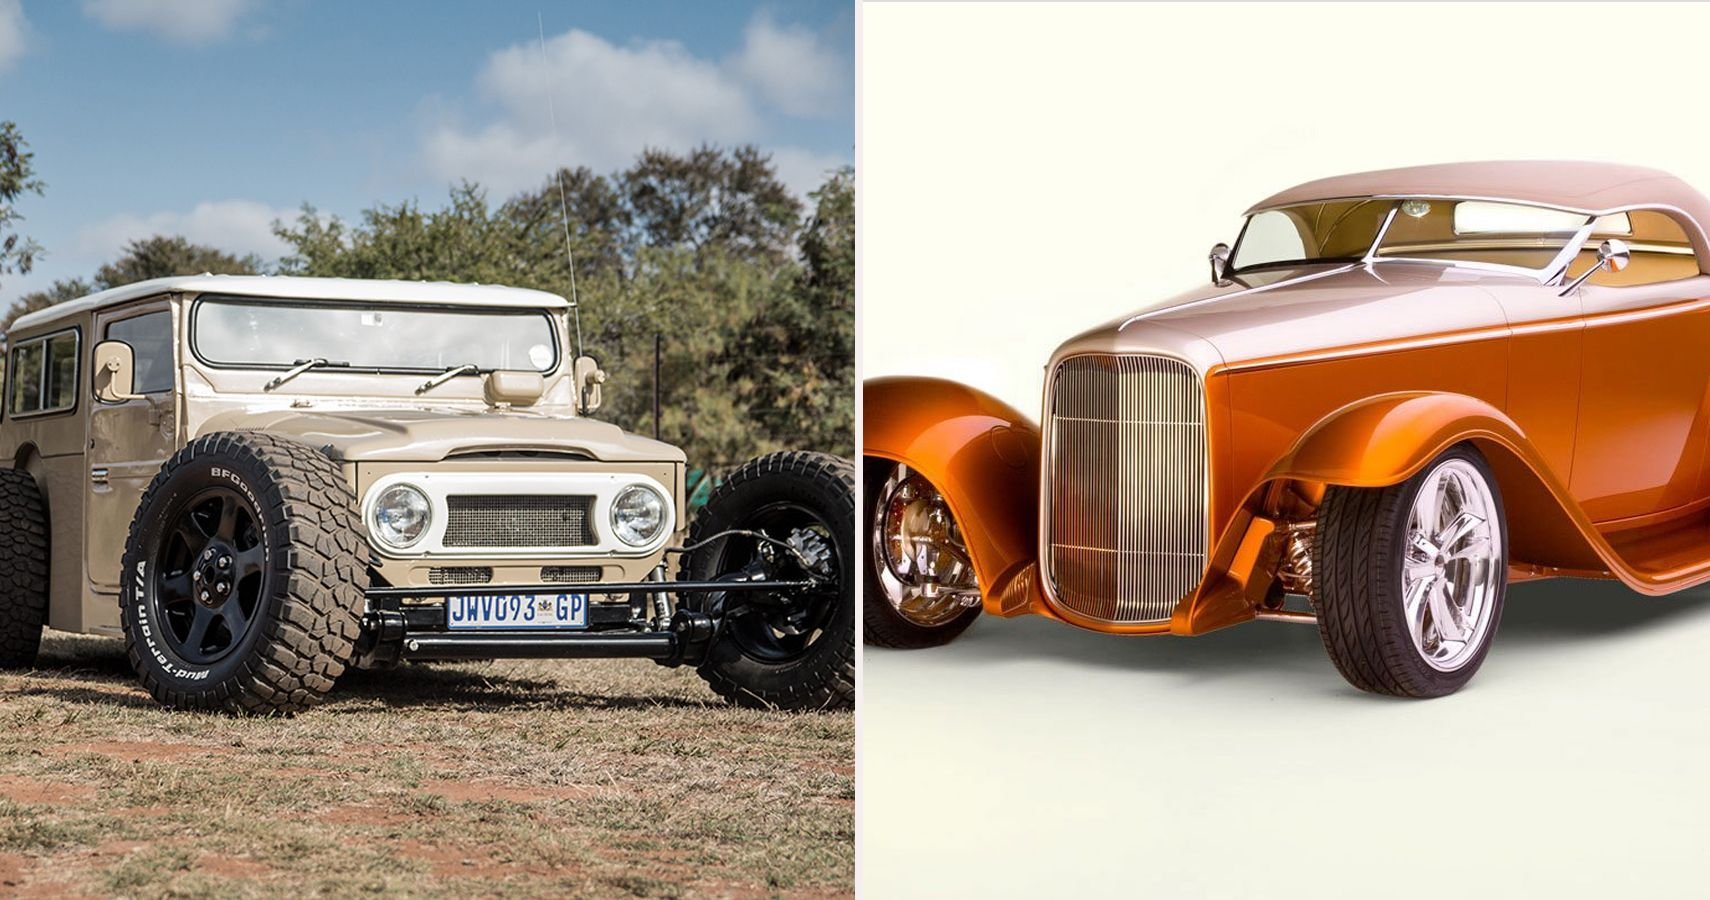 10 Most Bad Ass Hot Rods Of All Time   HotCars